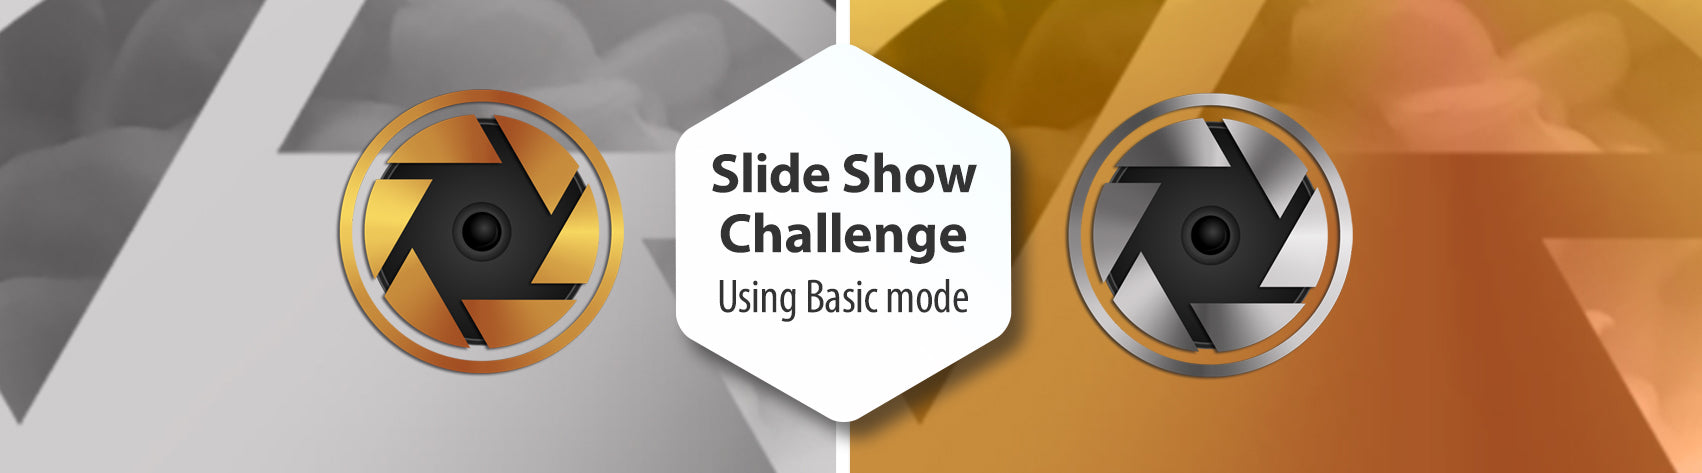 Slide Show Challenge - Using Basic Mode